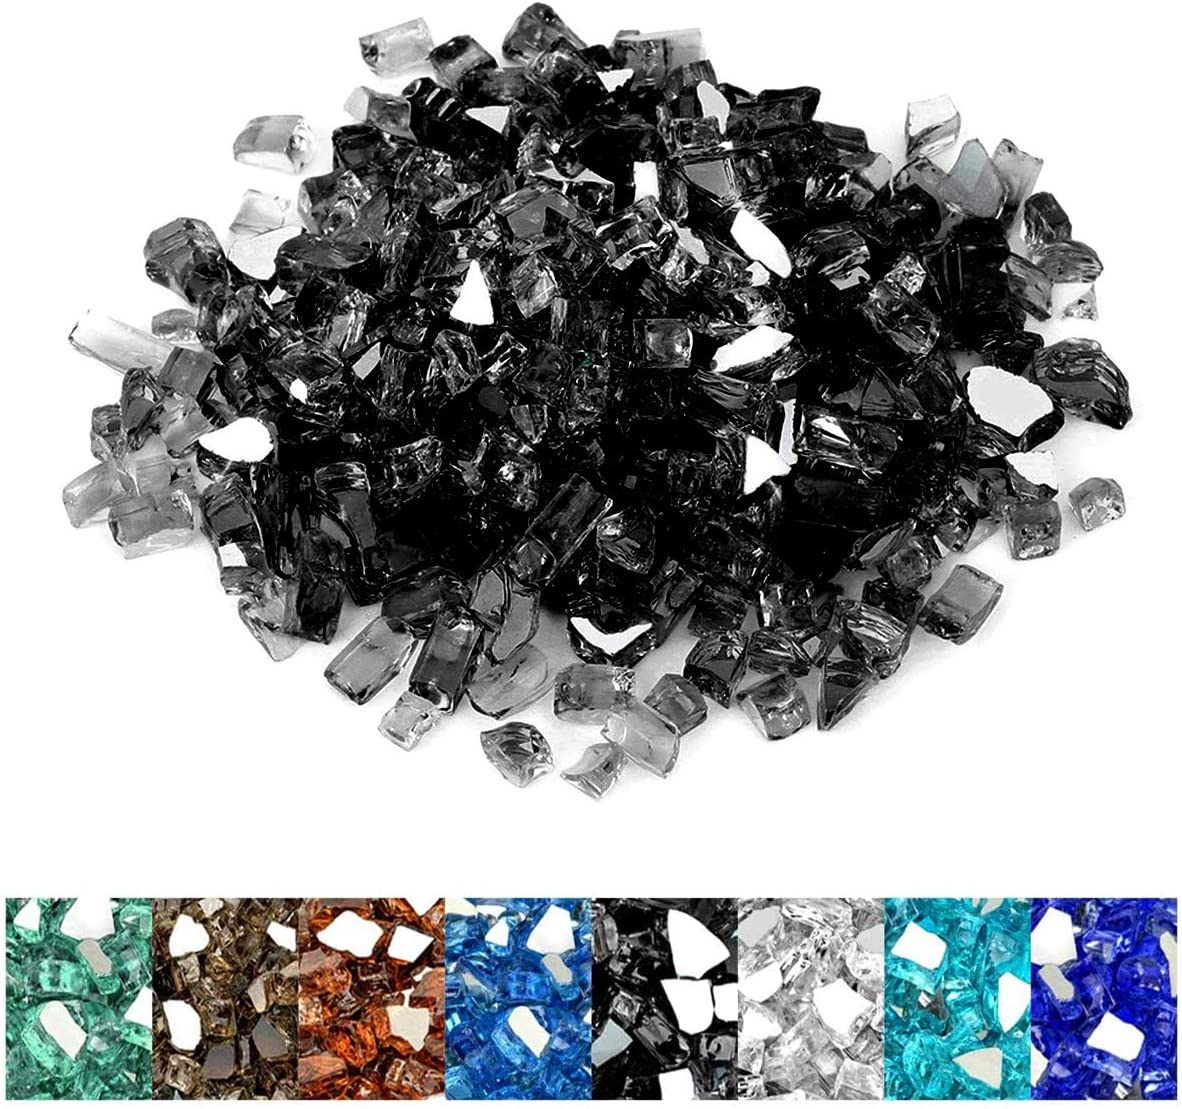 Fireplace 10-Pound Onlyfire Reflective Fire Glass Diamonds for Natural or Propane Fire Pit 1//2-Inch or Gas Log Sets Onyx Black